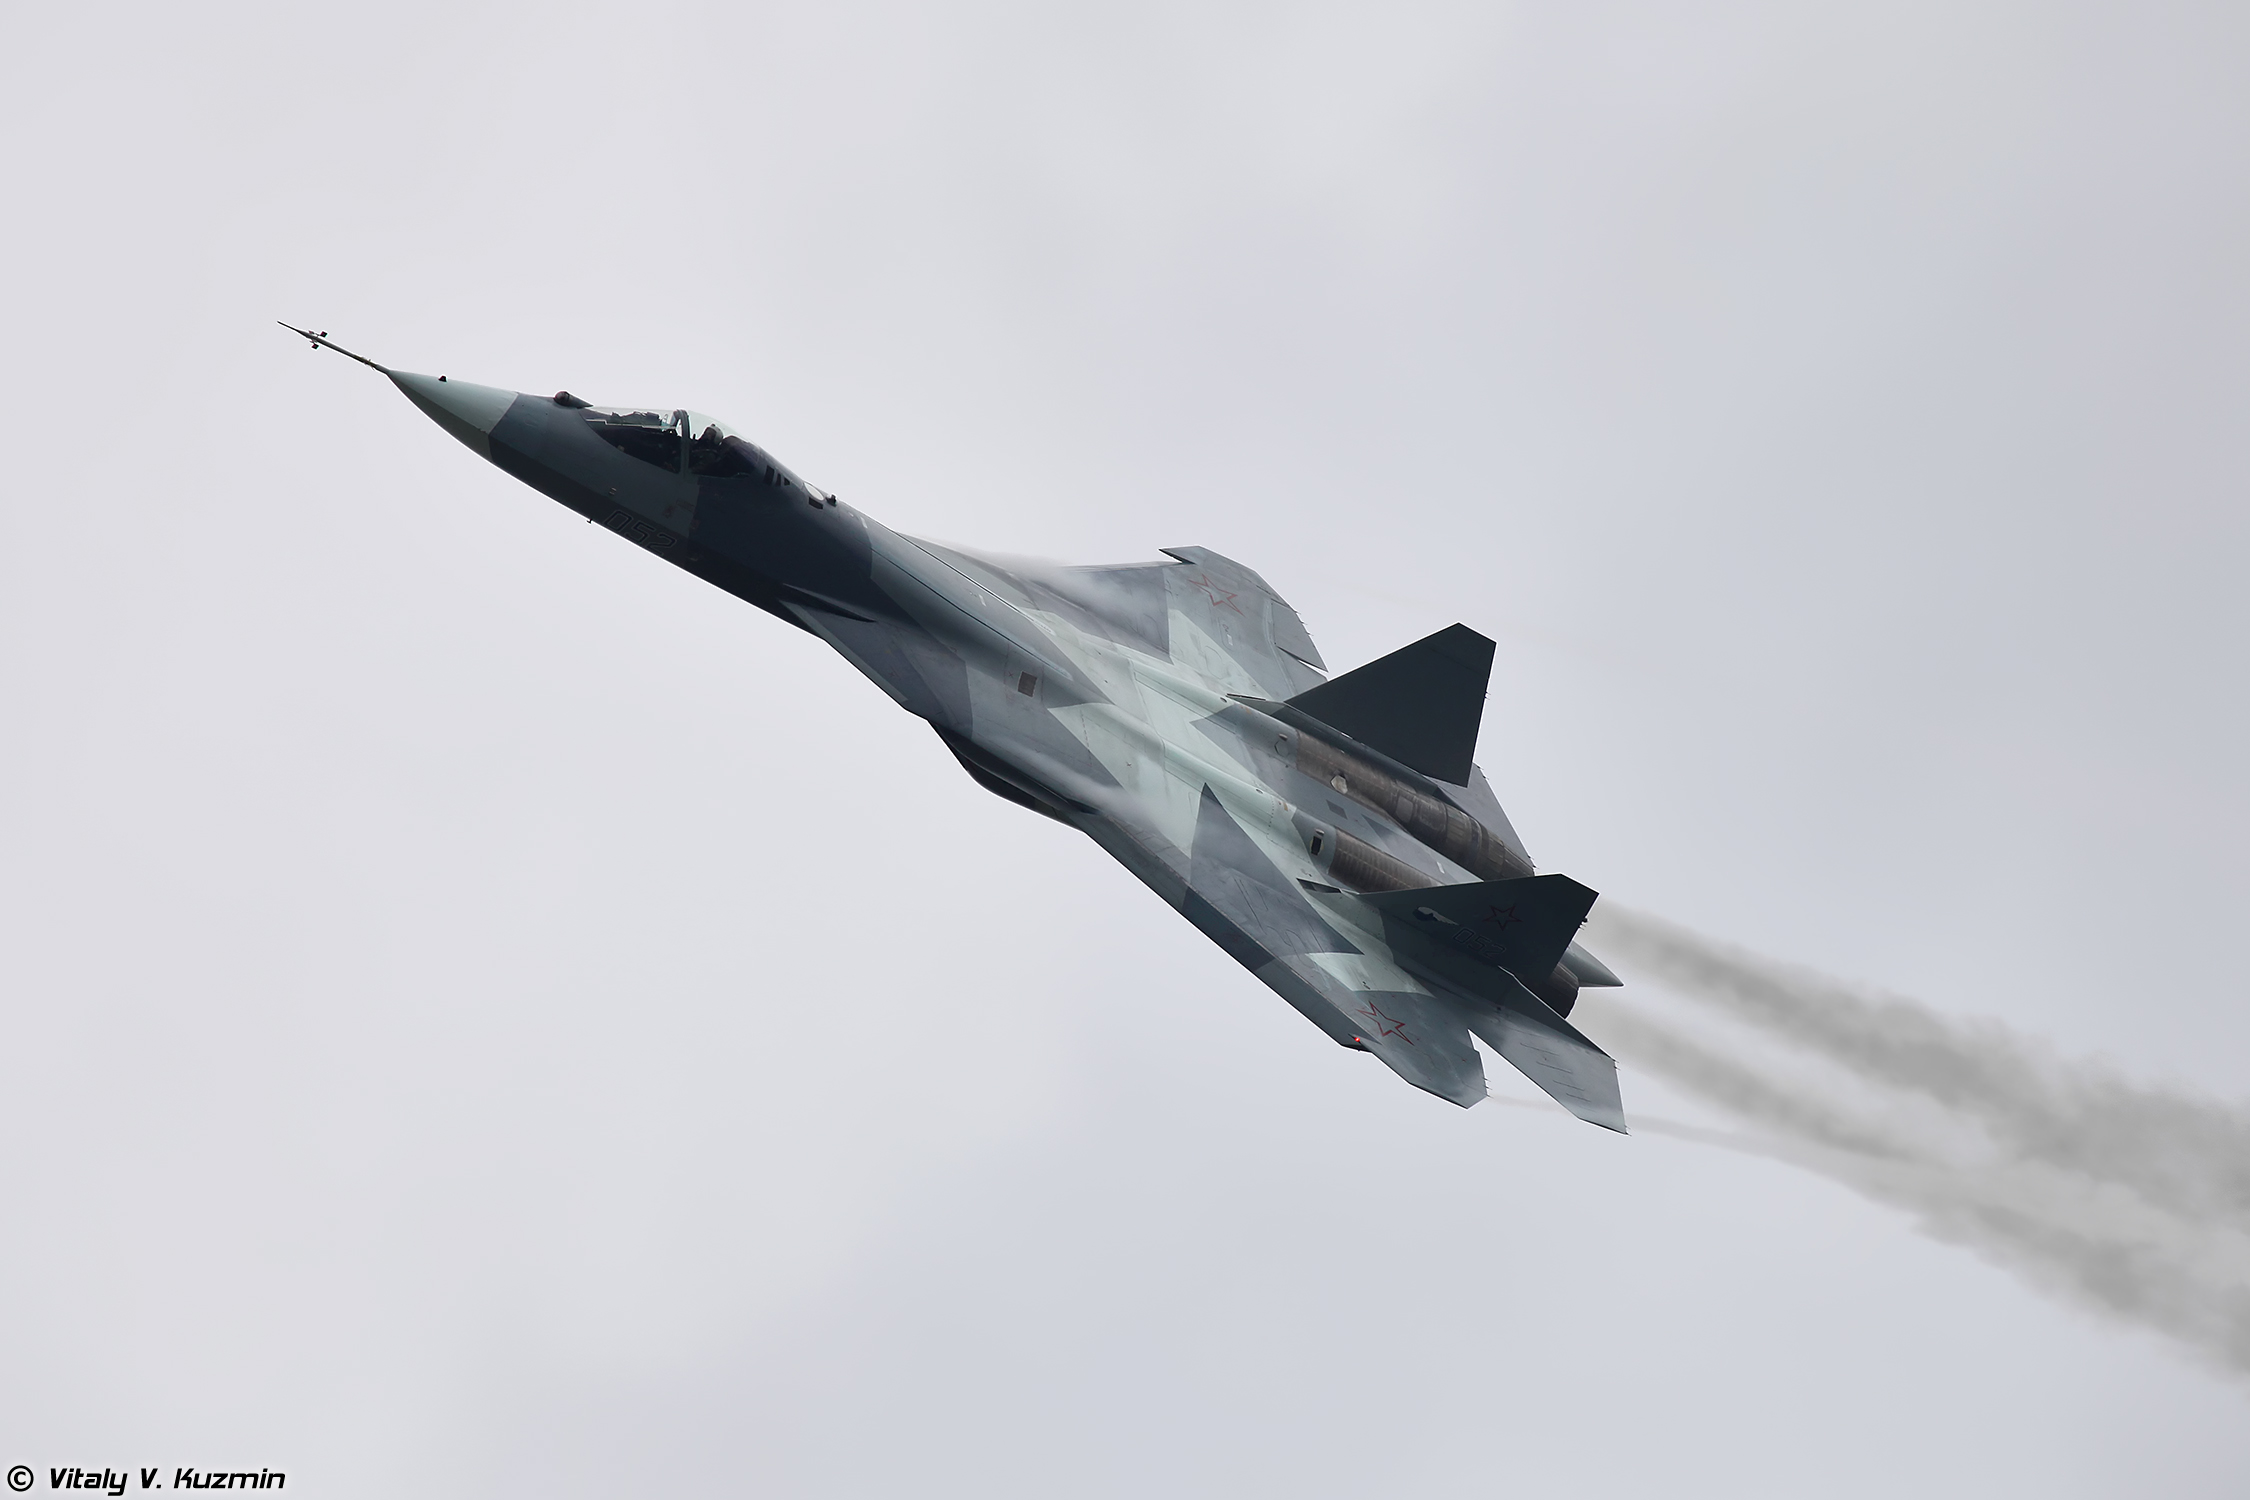 The FGFA fighter is developed based on the Russian PAK FA jet in accordance with the Indian side's technical requirements.